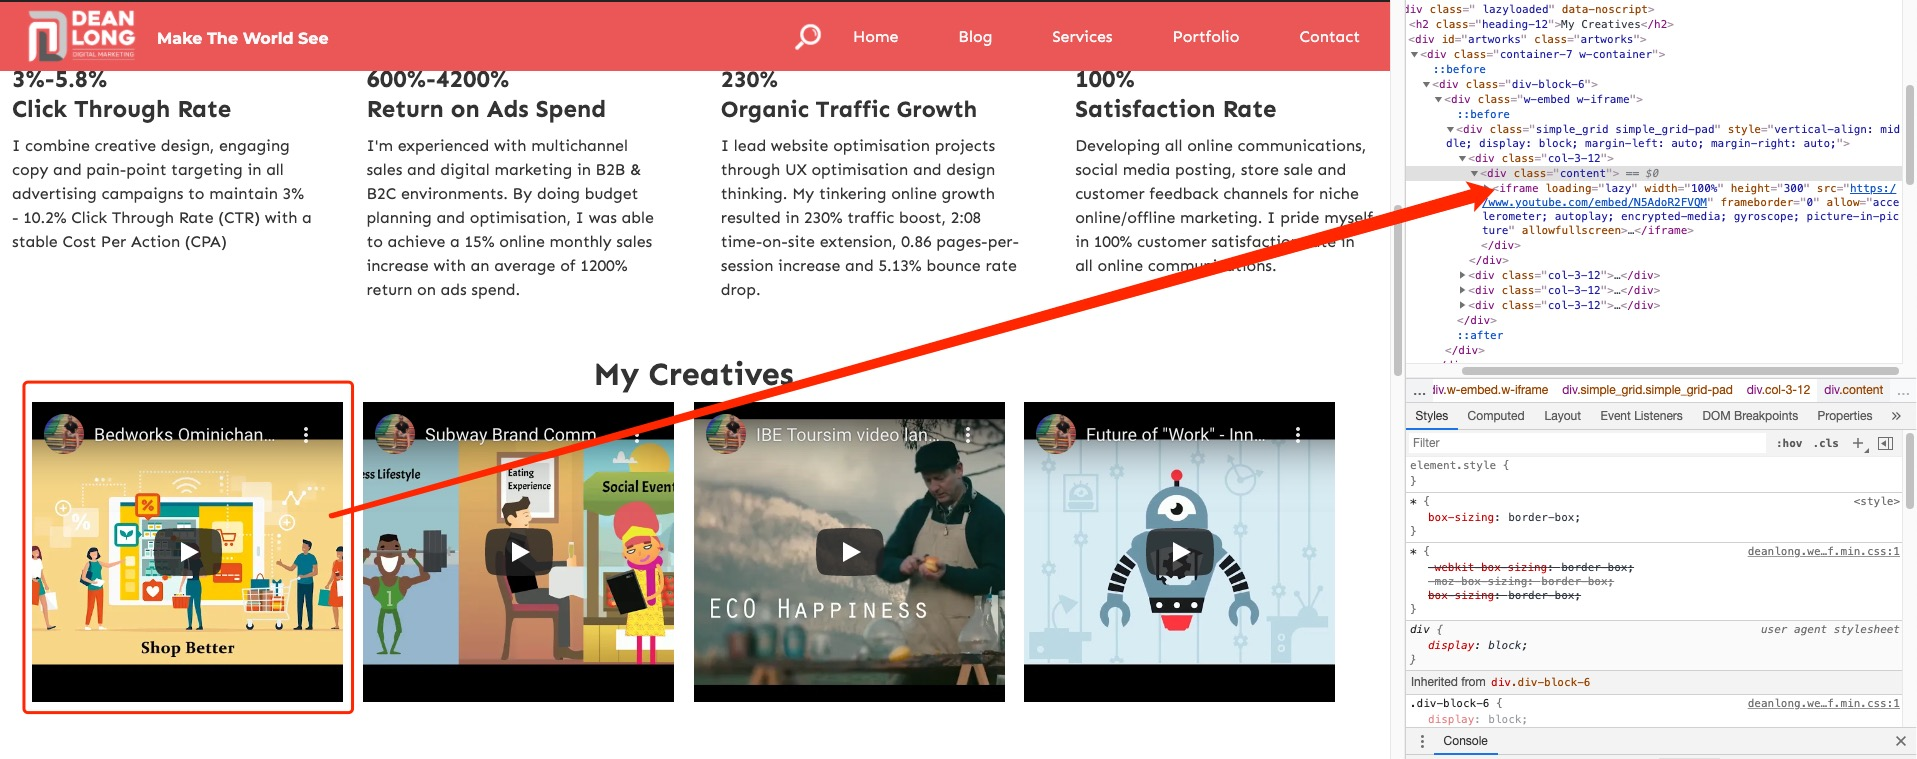 Using <iframe>tag to embed videos on my portfolio page | DEANLONG.io